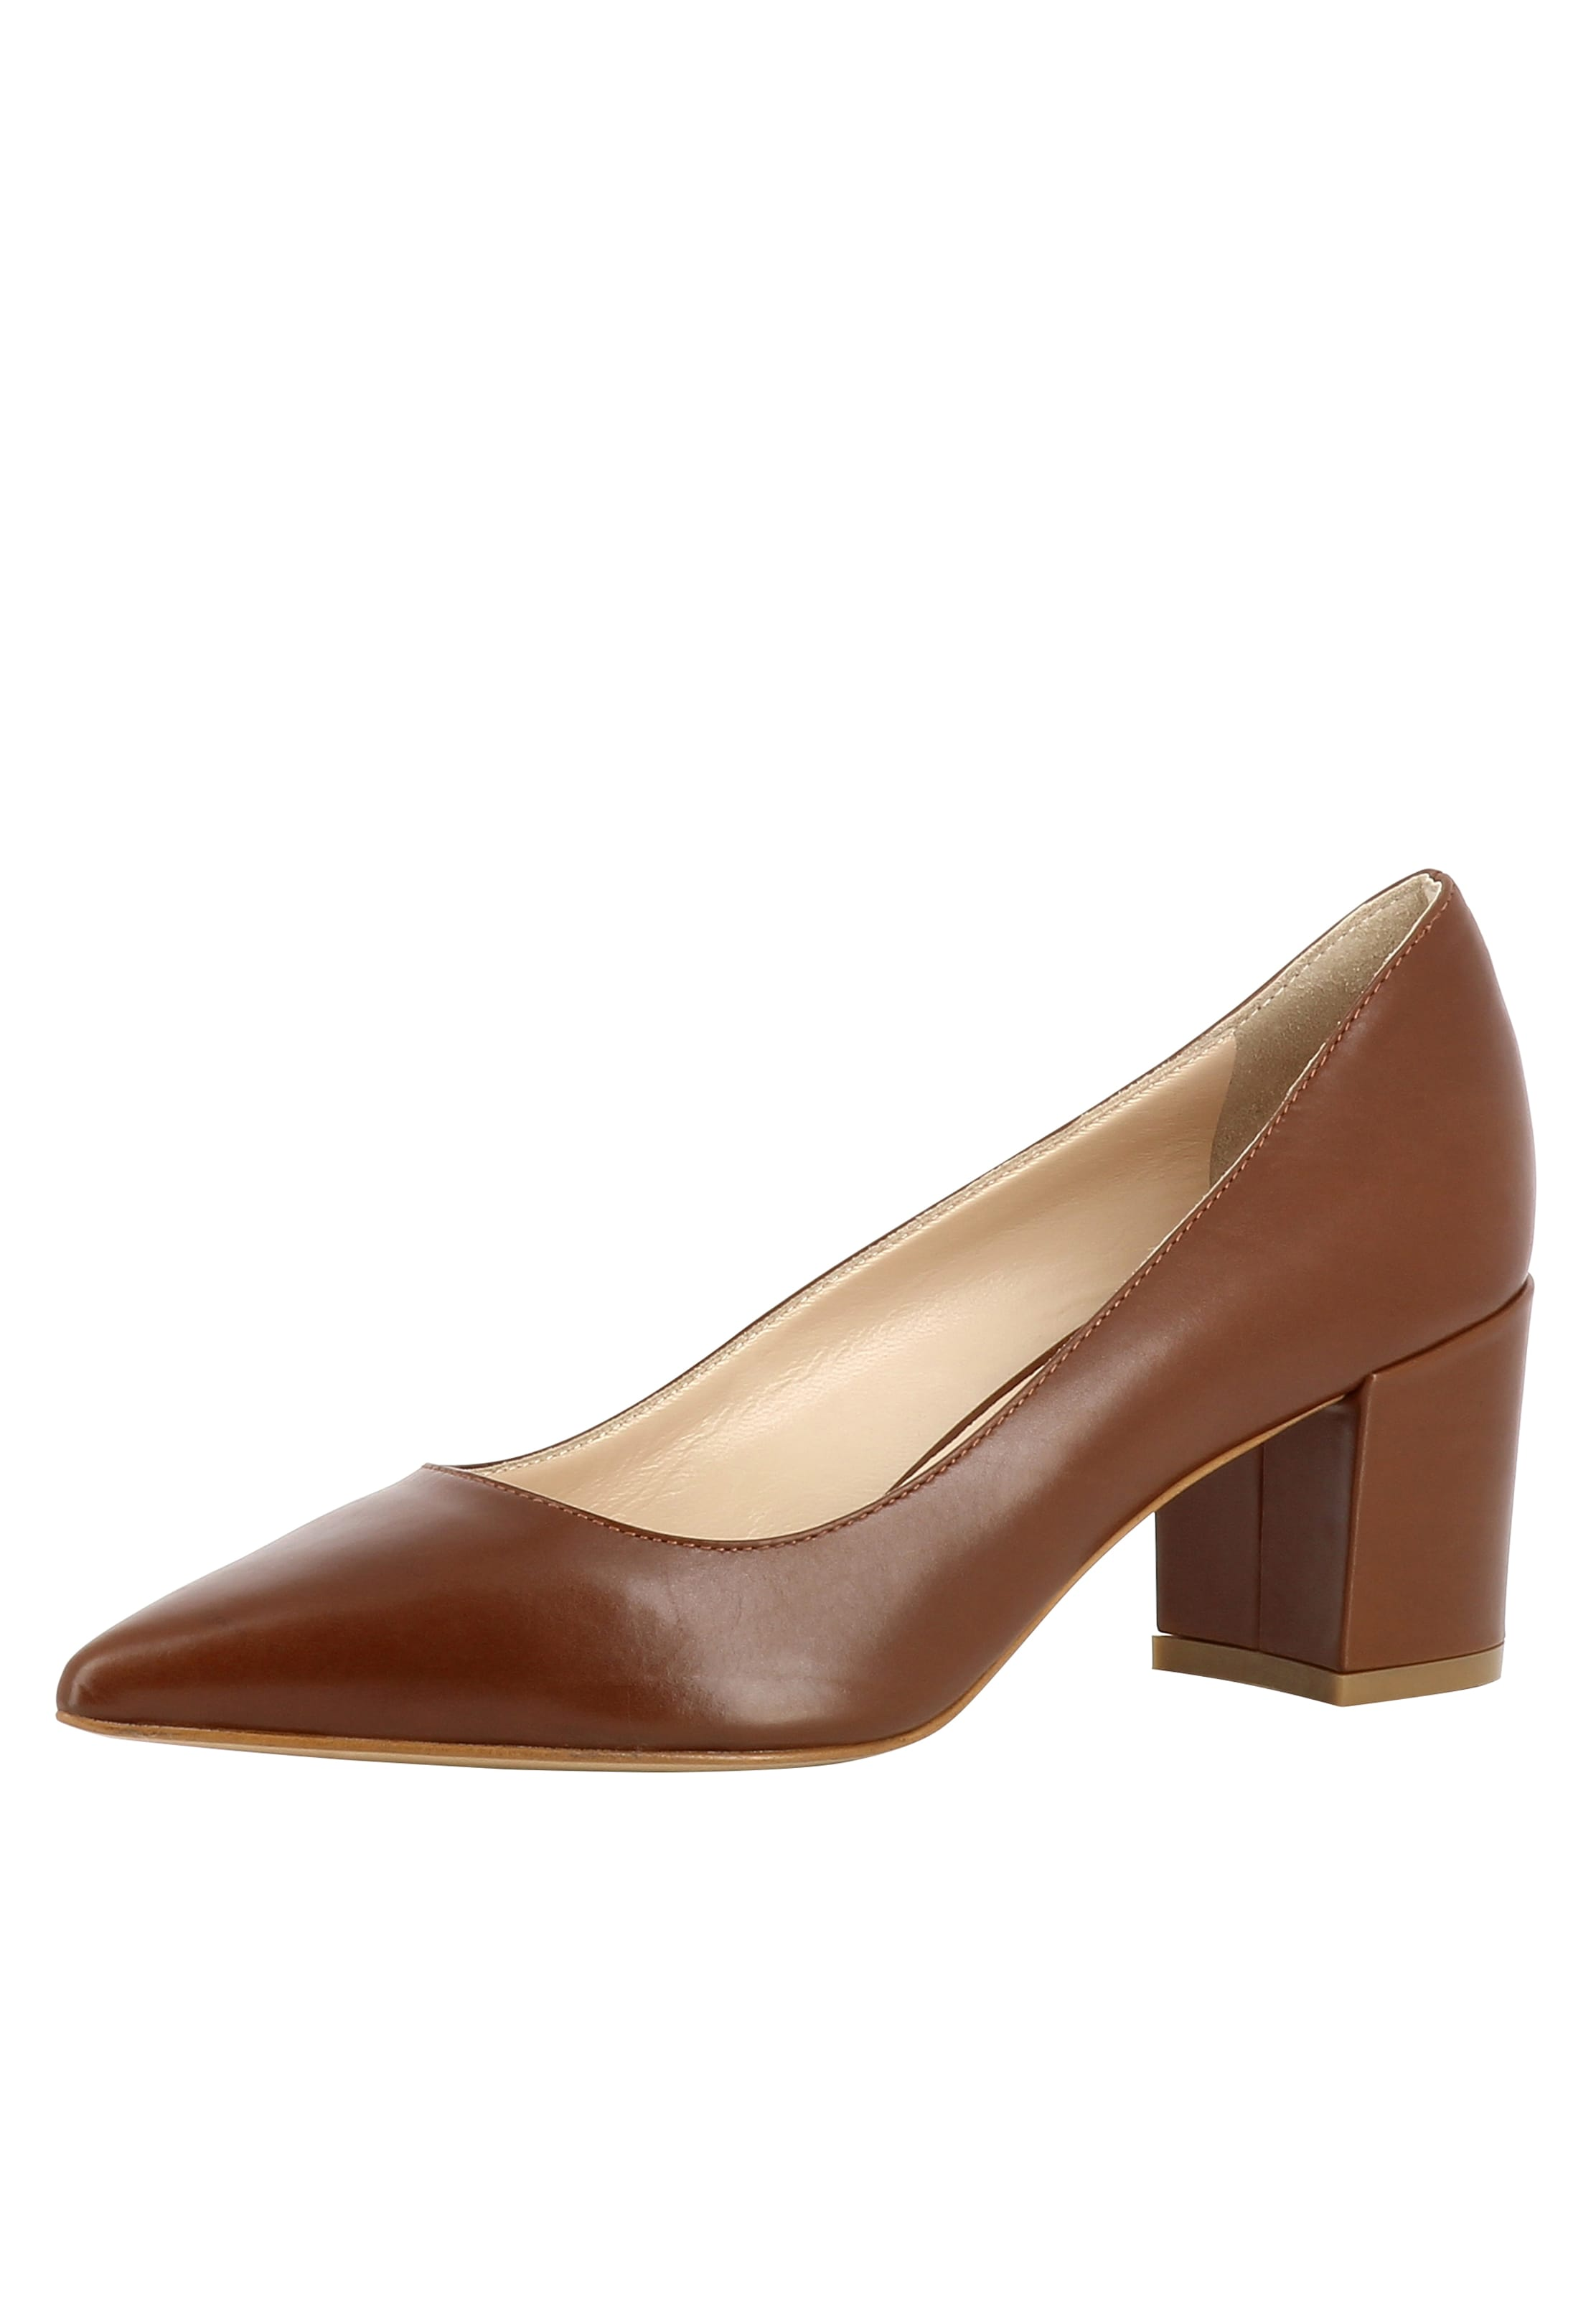 EVITA Damen Pumps  ROMINA